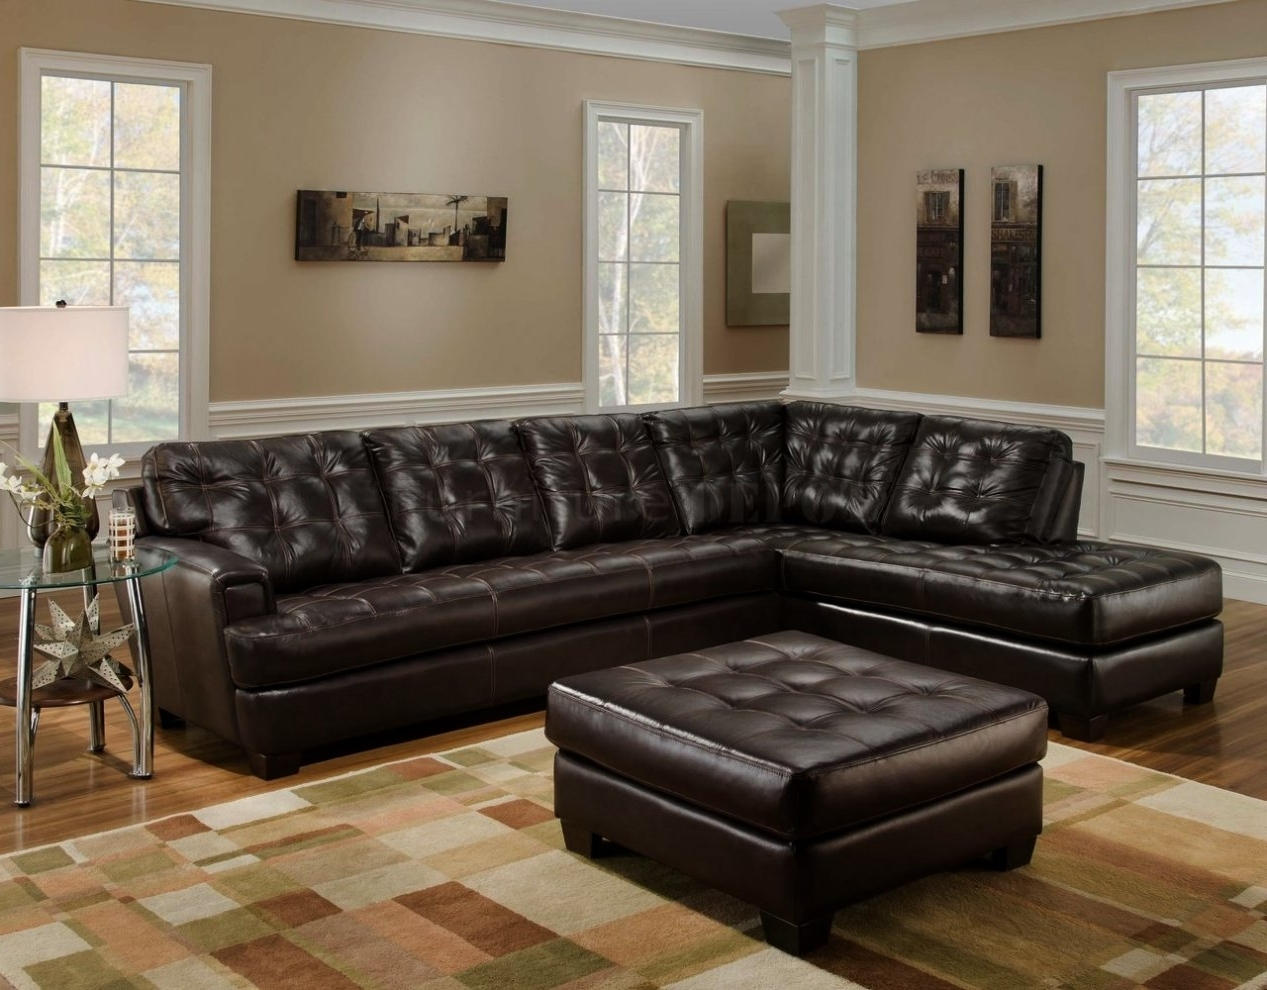 Current Dark Brown Leather Tufted Sectional Chaise Lounge Sofa With Regarding Leather Sectionals With Chaise (View 1 of 15)